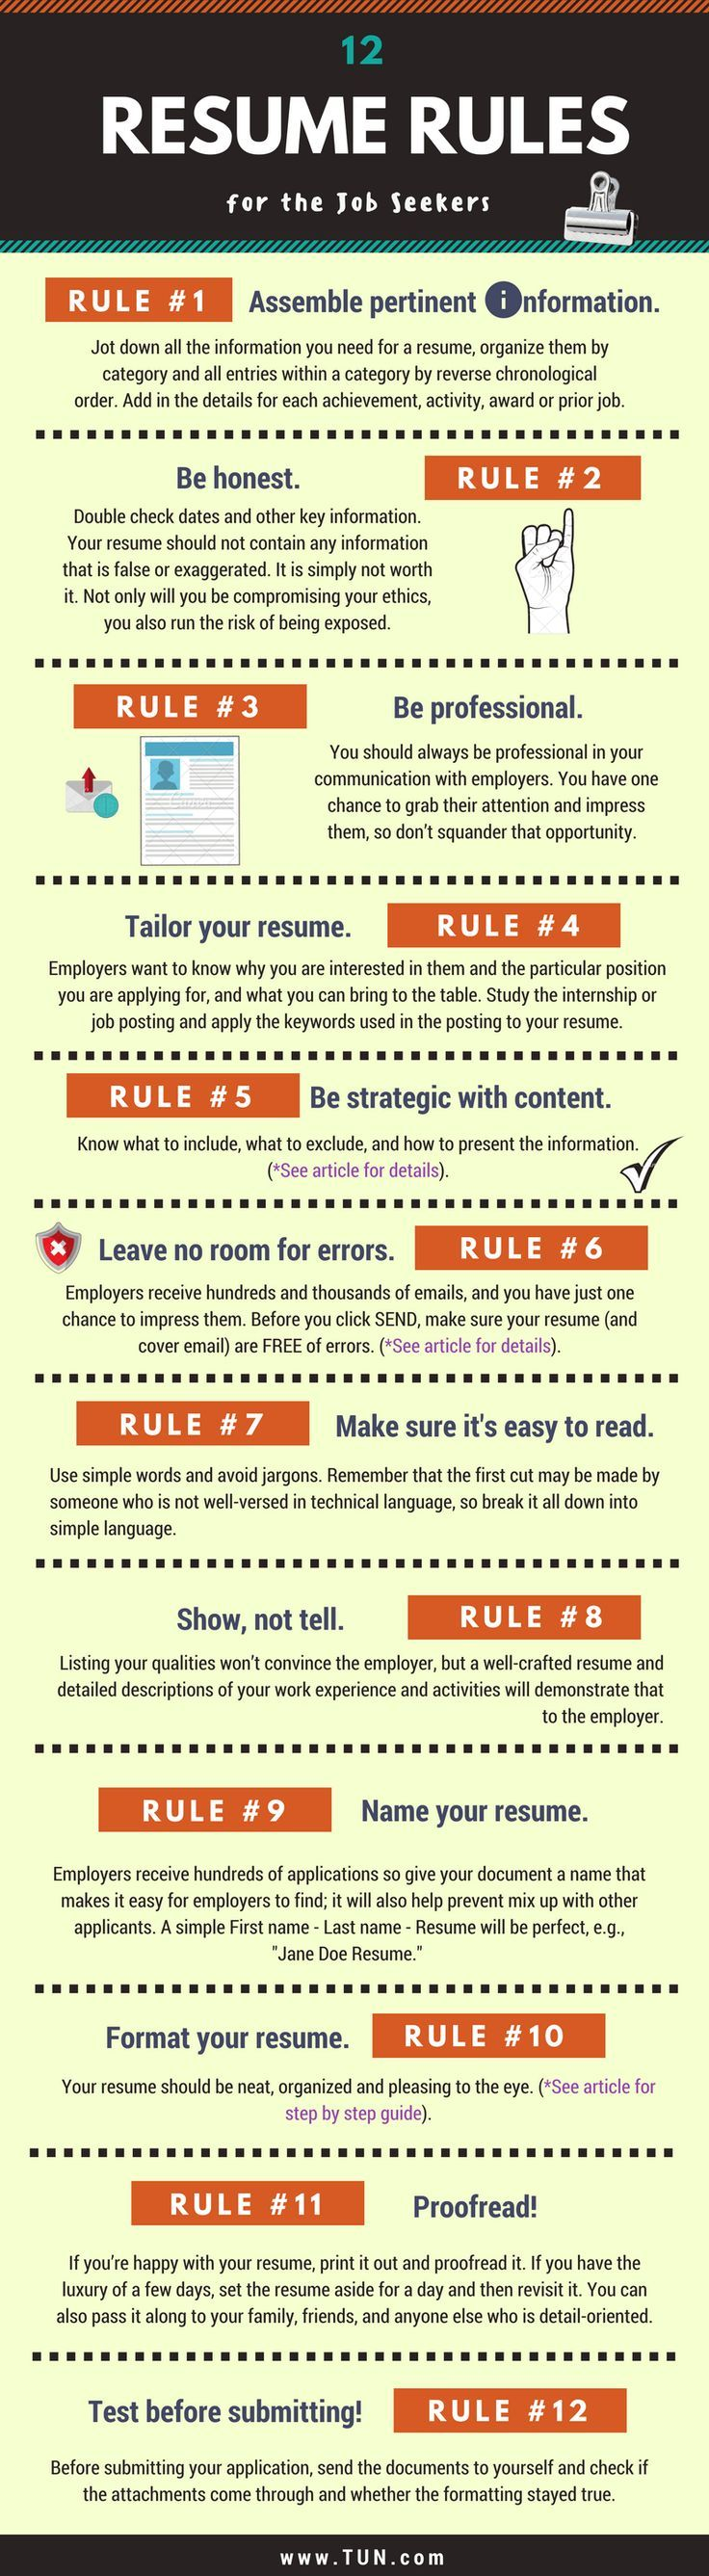 College Resume Tips Inspiration The Complete Resume Guide For College Students  12 Rules For Resume .